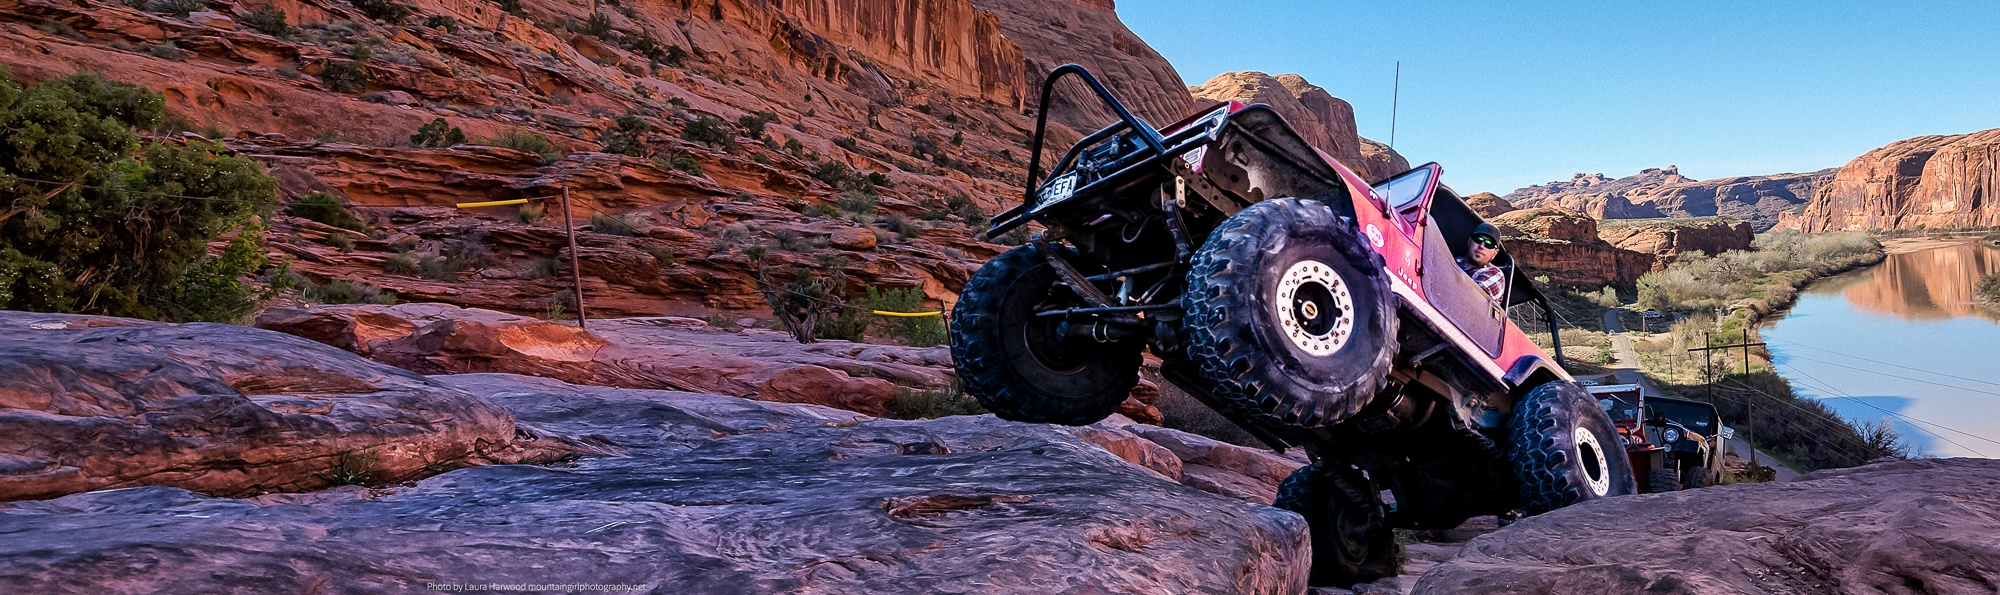 Eric on Moab Rim - Courtesy of Mountain Girl Photography